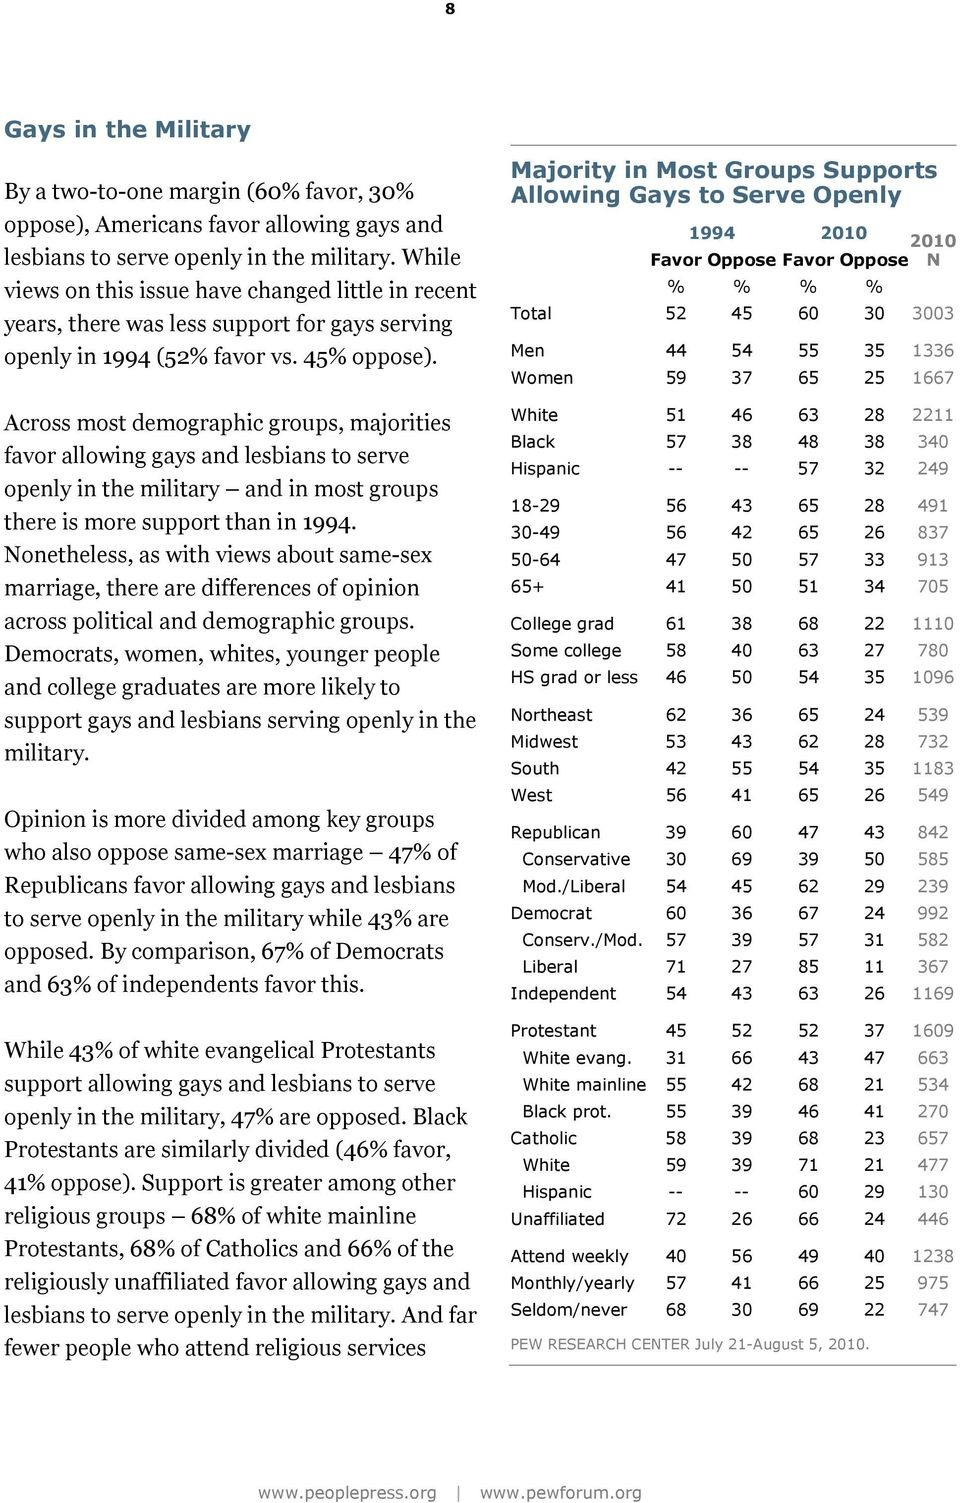 Across most demographic groups, majorities favor allowing gays and lesbians to serve openly in the military and in most groups there is more support than in 1994.